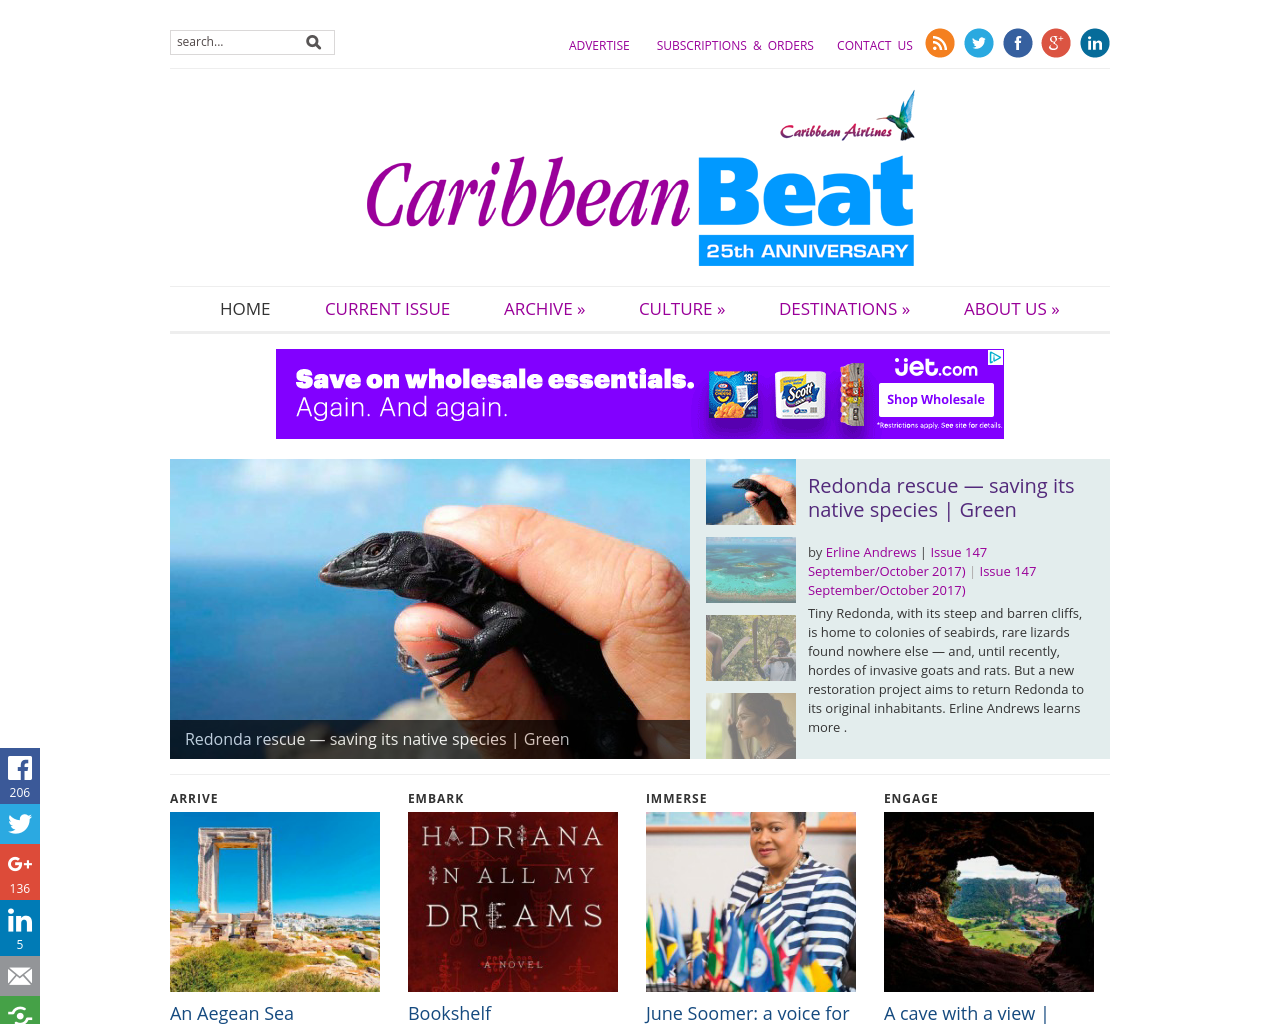 Caribbean-Beat-Advertising-Reviews-Pricing